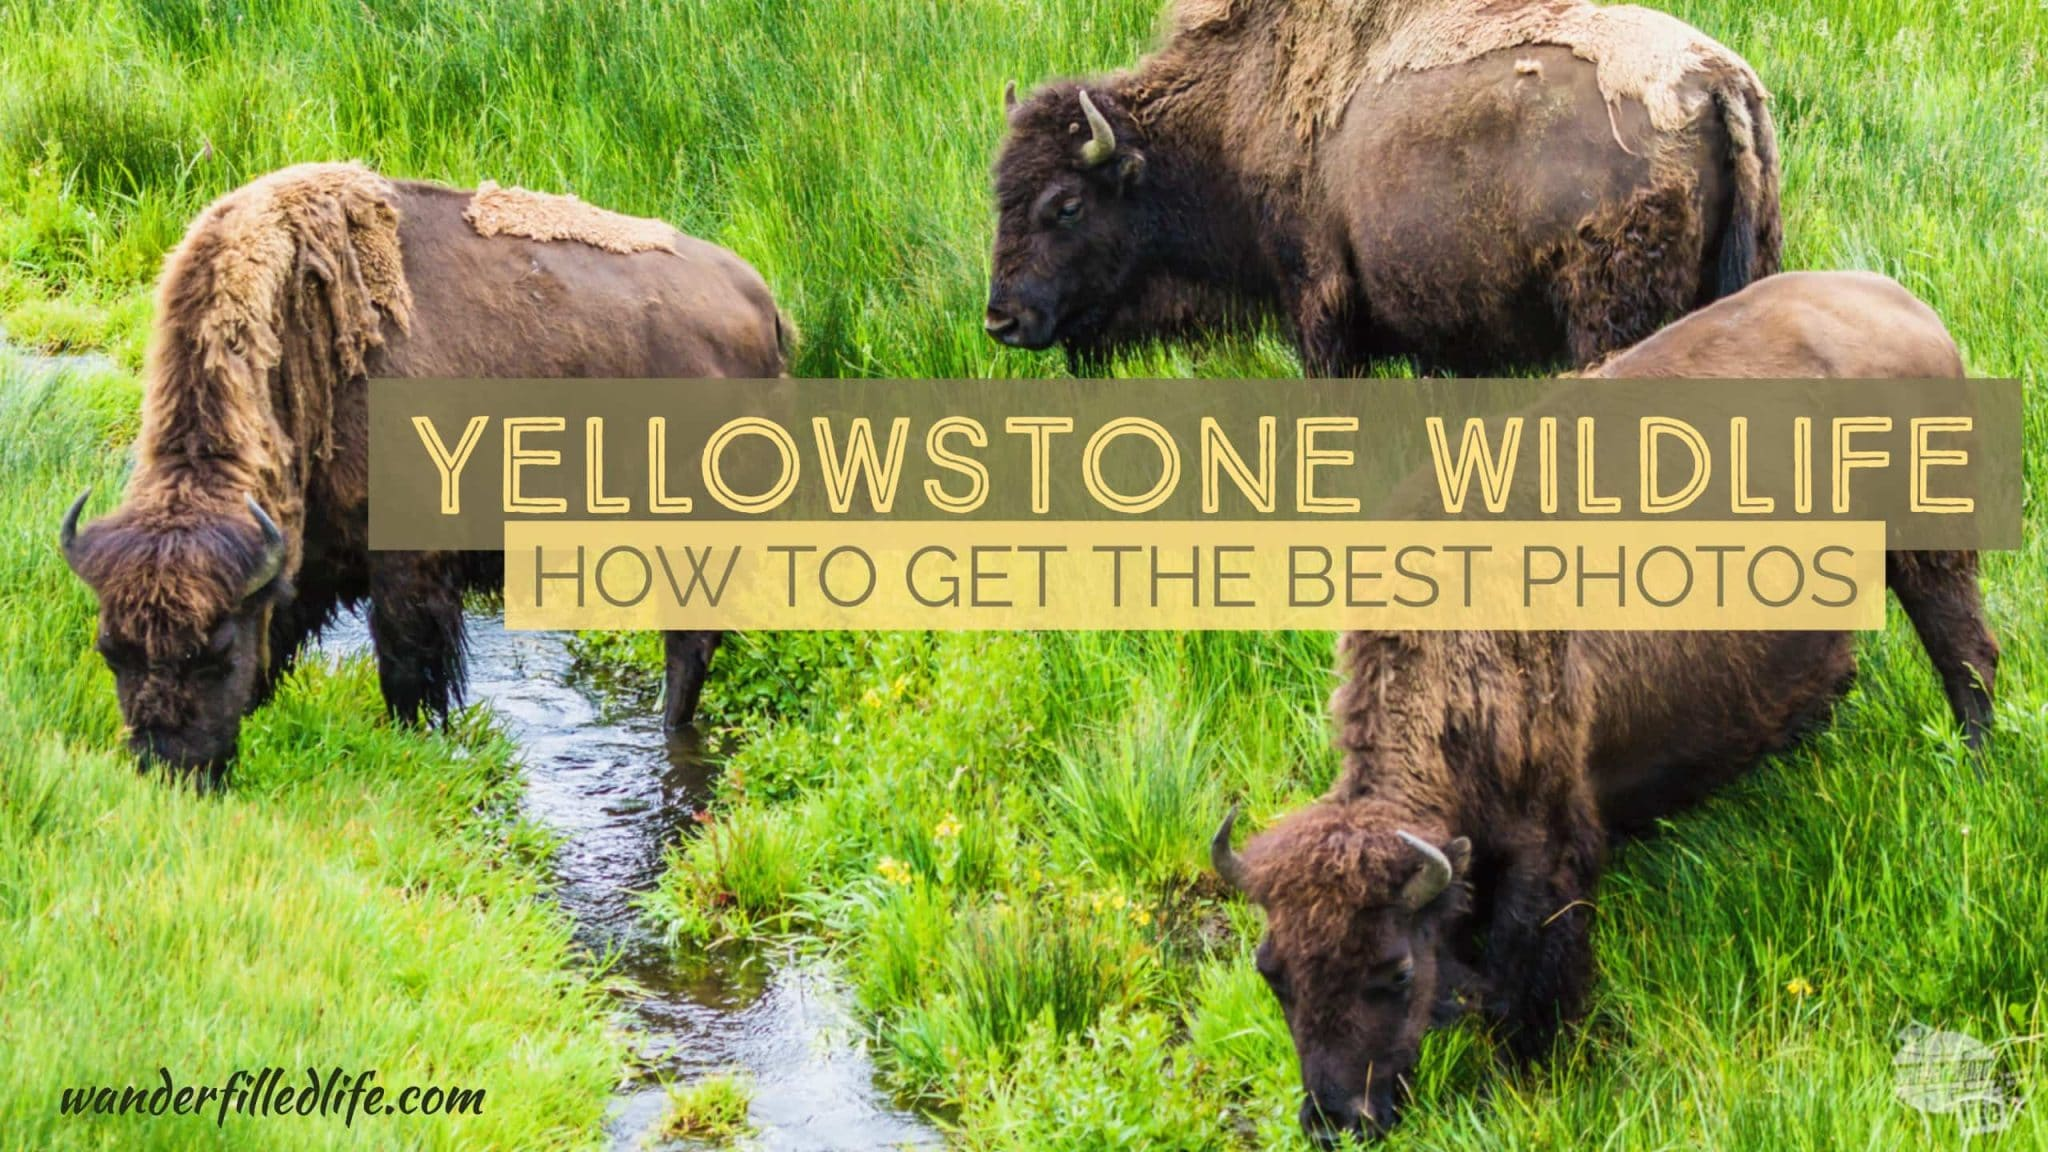 Finding and Photographing Yellowstone Wildlife